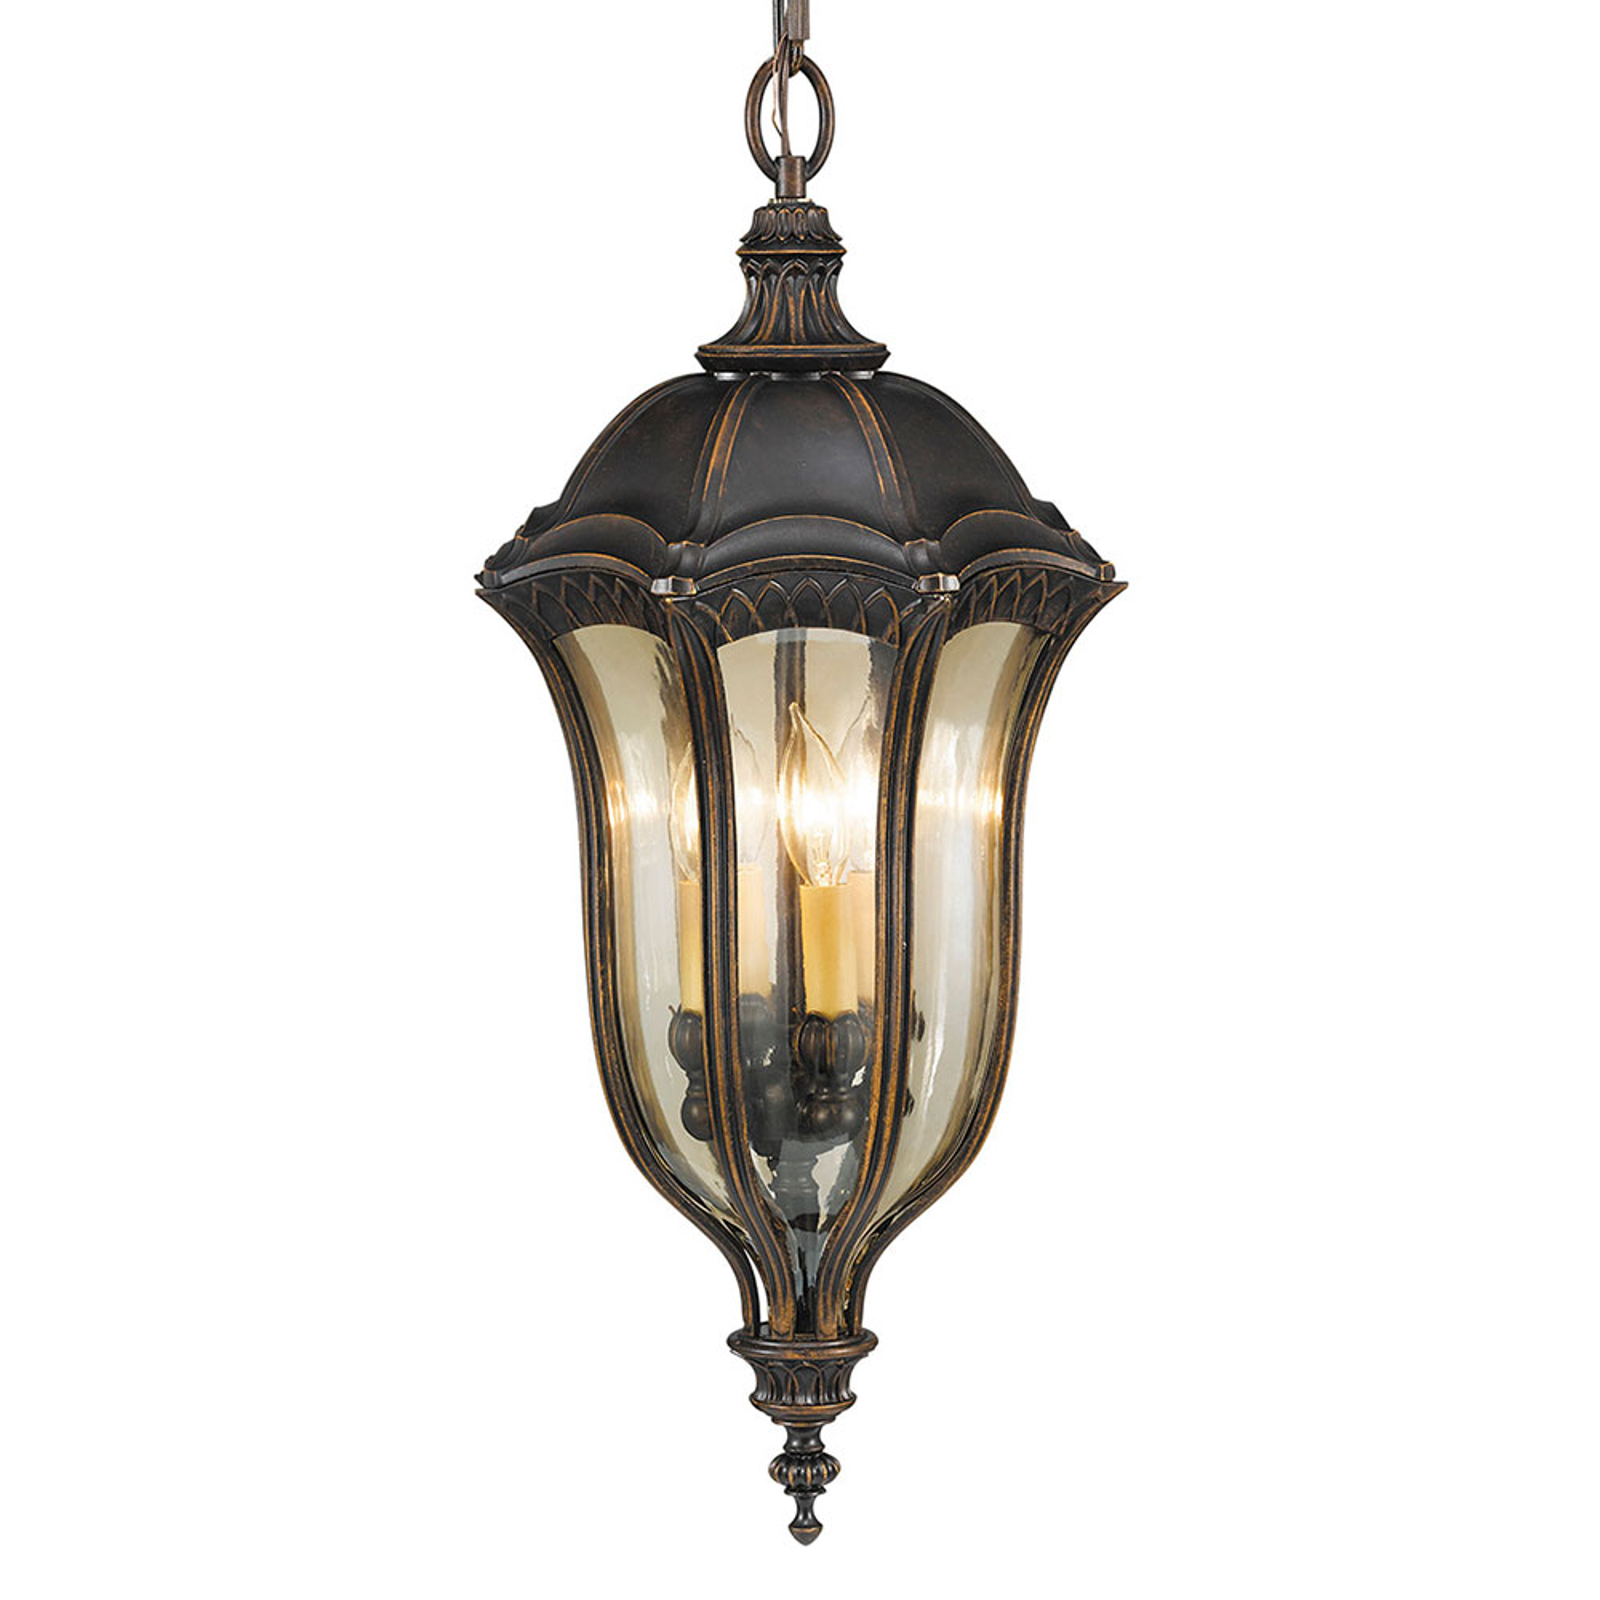 Outdoor pendant light Baton Rouge_3048089_1